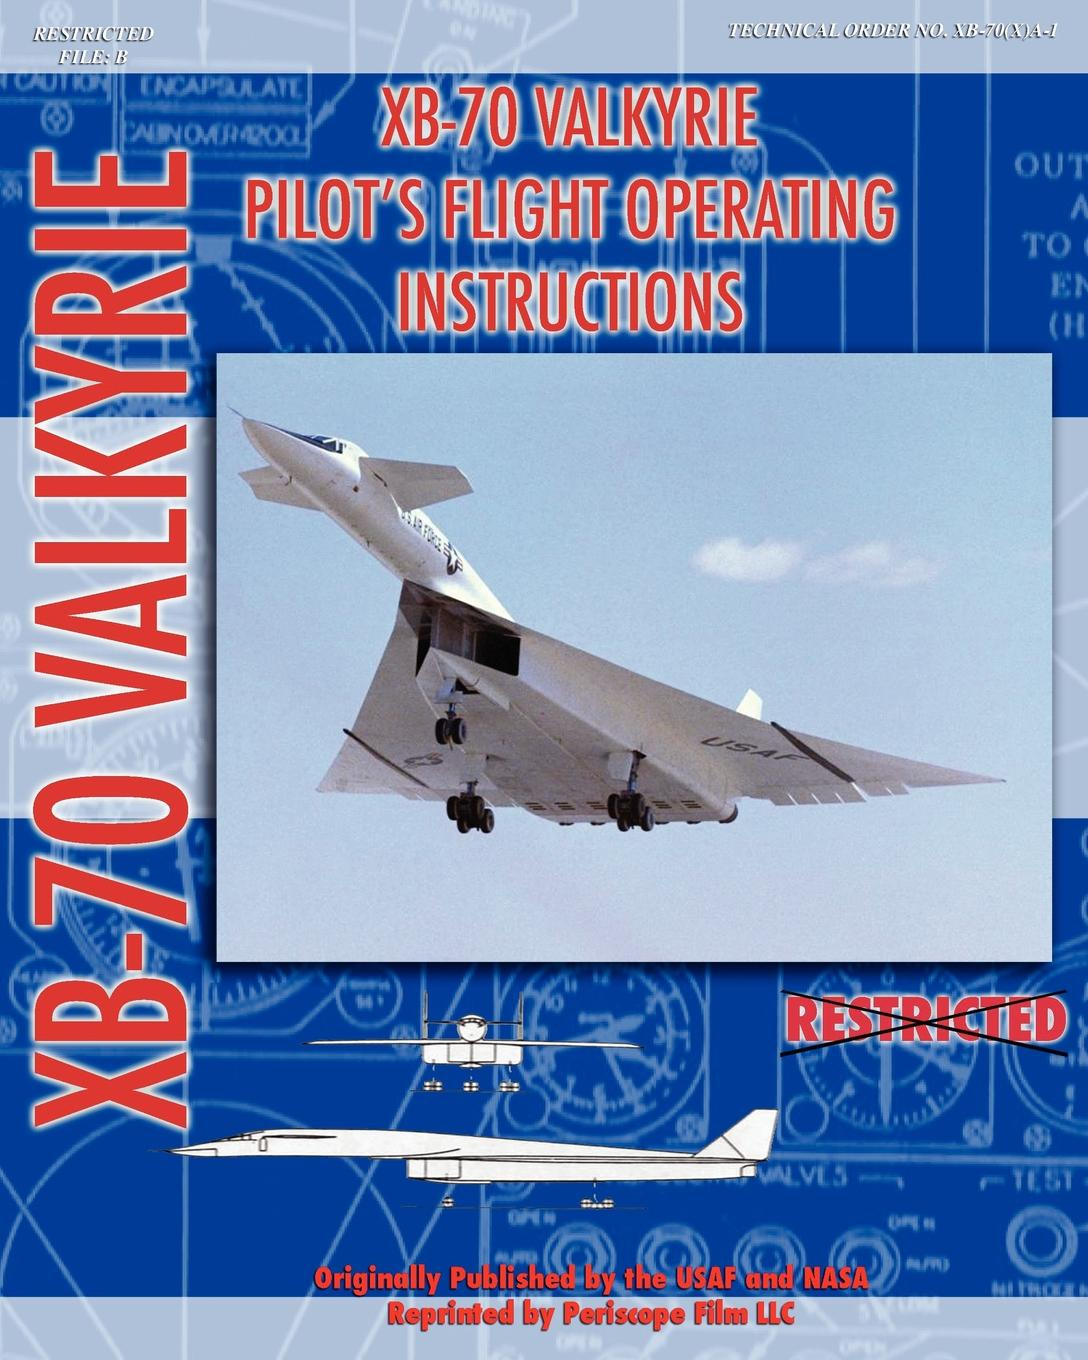 United States Air Force, NASA XB-70 Valkerie Pilot's Flight Operating Manual